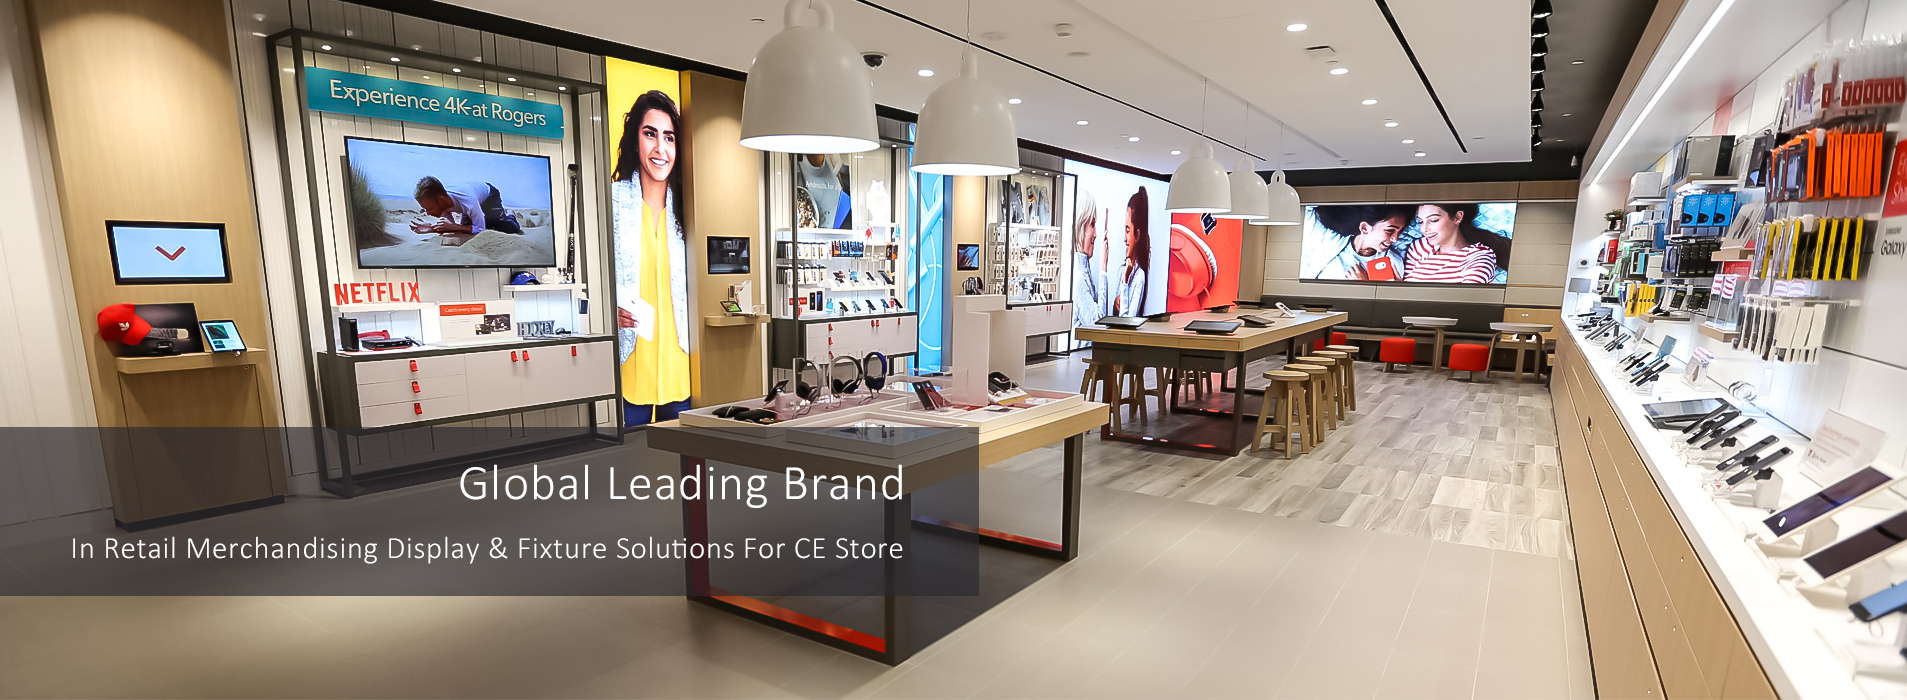 RECHI Is Global Leading Brand In Retail Merchandising Display & Fixture Solutions For Electronic Store